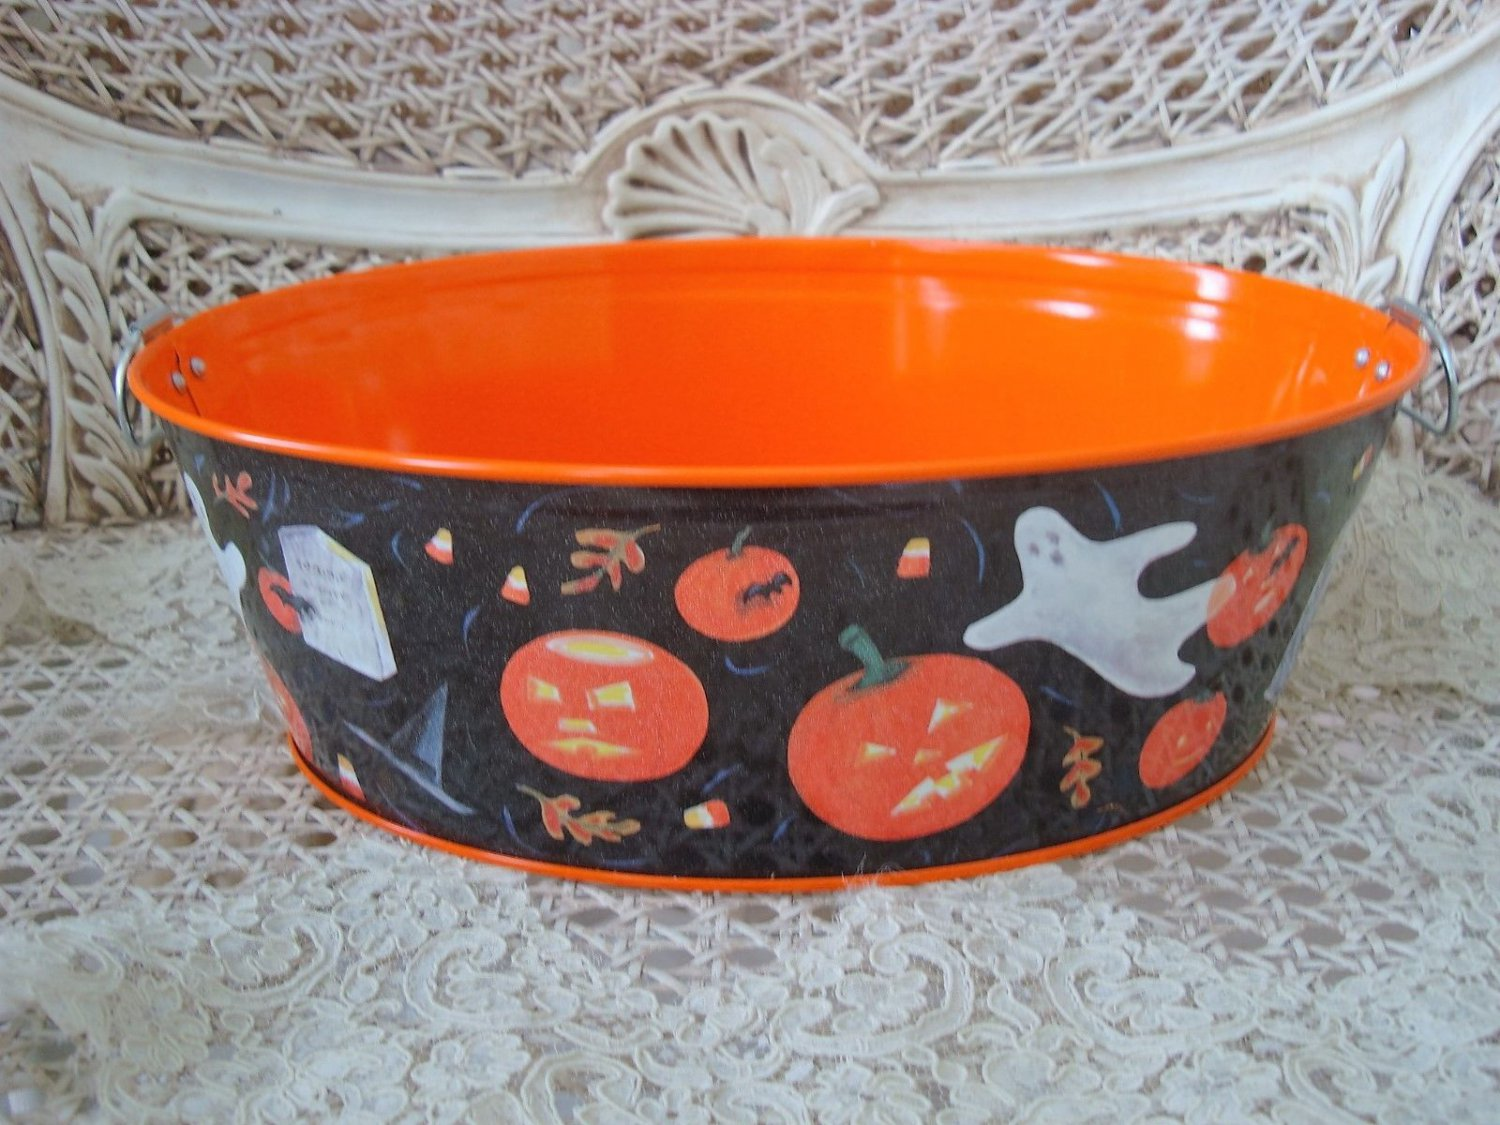 WHIMSICAL HALLOWEEN METAL TIN WITH GHOSTS PUMPKINS CANDY CORN BATS CATS *SO CUTE